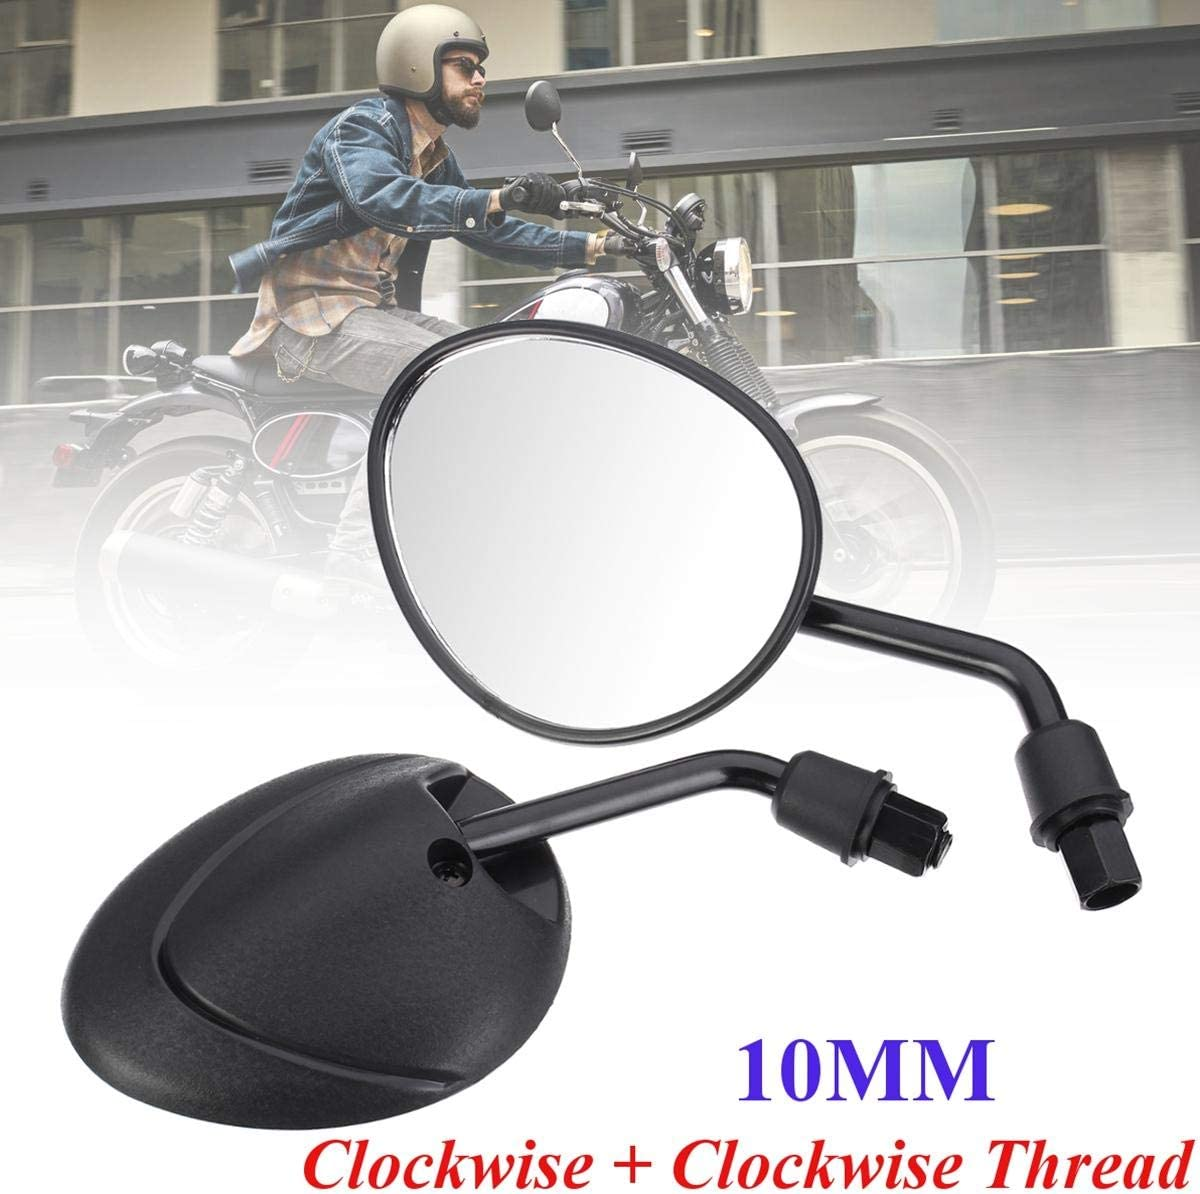 IJEOKDHDUW 8 10mm Motorcycle Black Rear Side Mirrors Ya Cheap bargain View for Max 75% OFF